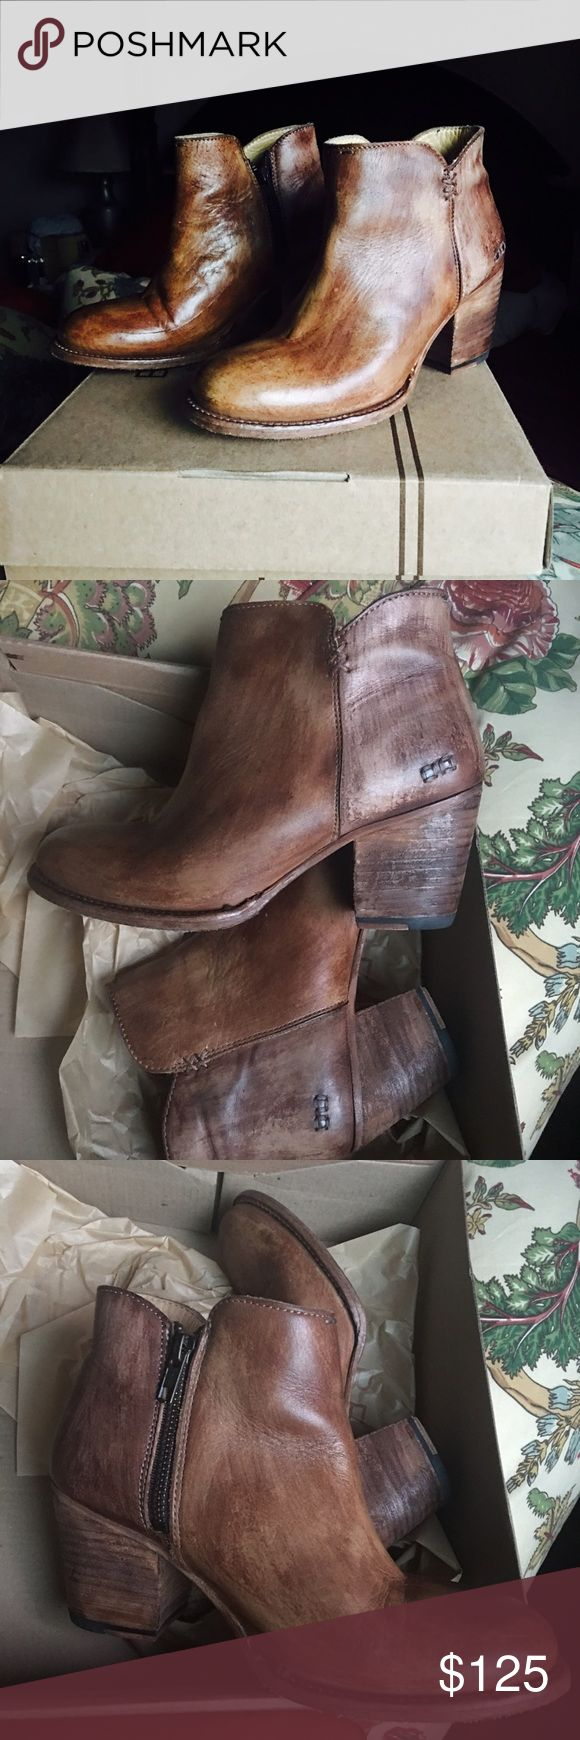 Bed Stu Yell teak driftwood ankle boots These boots have been worn twice, they retail for $235, they are great with skirts, skinny jeans. They are kept in original box,also in great condition! Bed Stu Shoes Ankle Boots & Booties